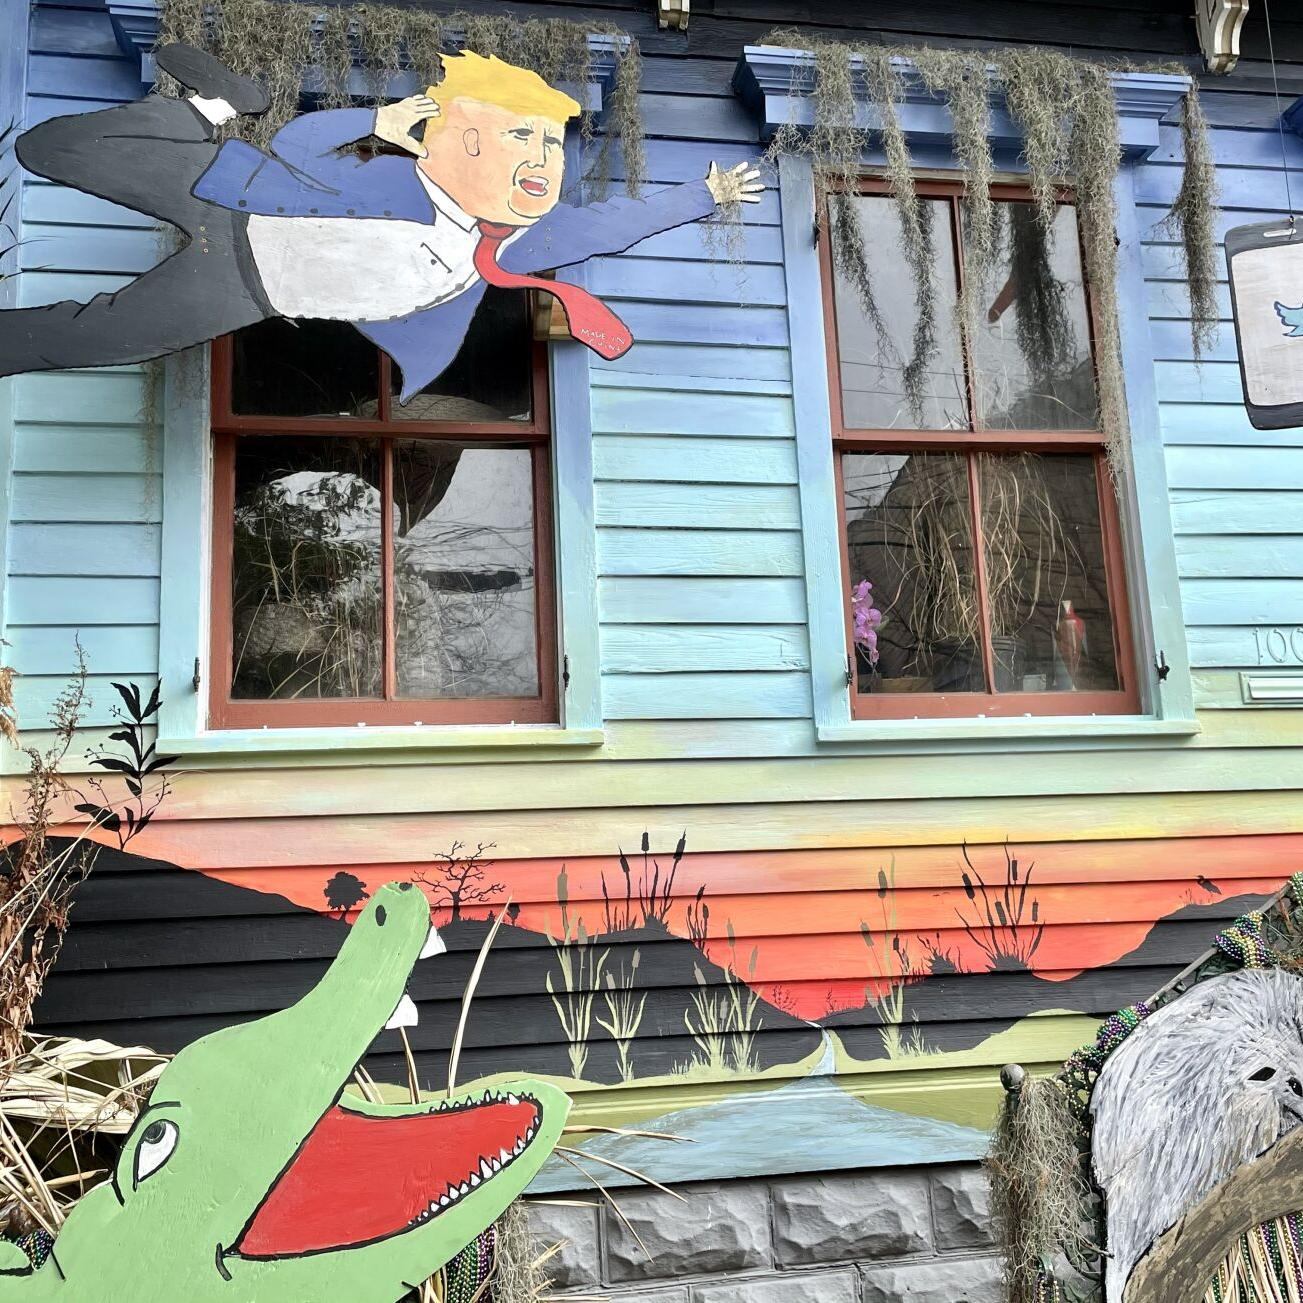 What Do Donald Trump Bernie Sanders And 3 Possums Have In Common They Share A Float House Mardi Gras Nola Com